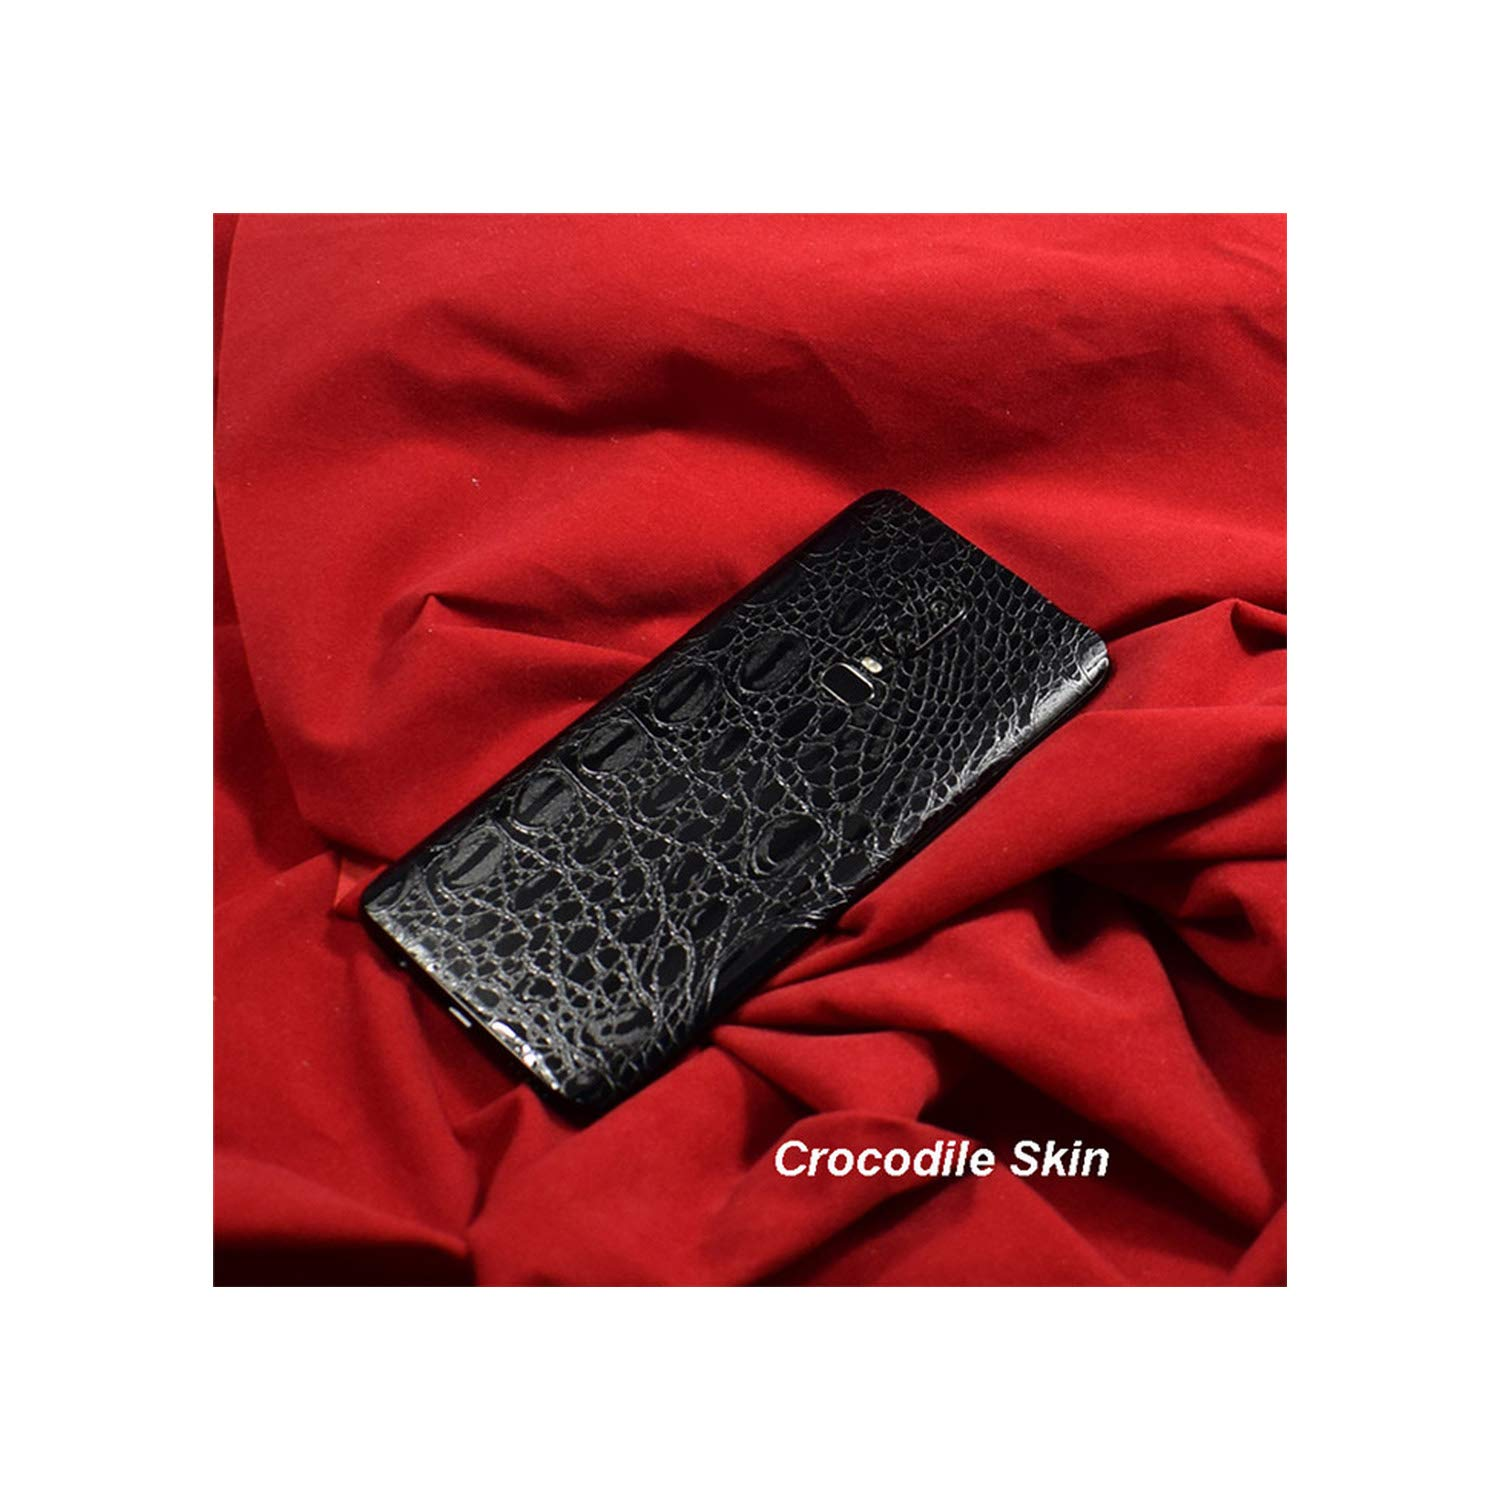 3D Carbon Fiber Sticker for Oneplus 7 Pro Leather//Wood Skins Protective Phone Back Cover Sticker for Oneplus 6T 1+6 Sticker,for Oneplus 7 Pro,Wood Skin Lihua